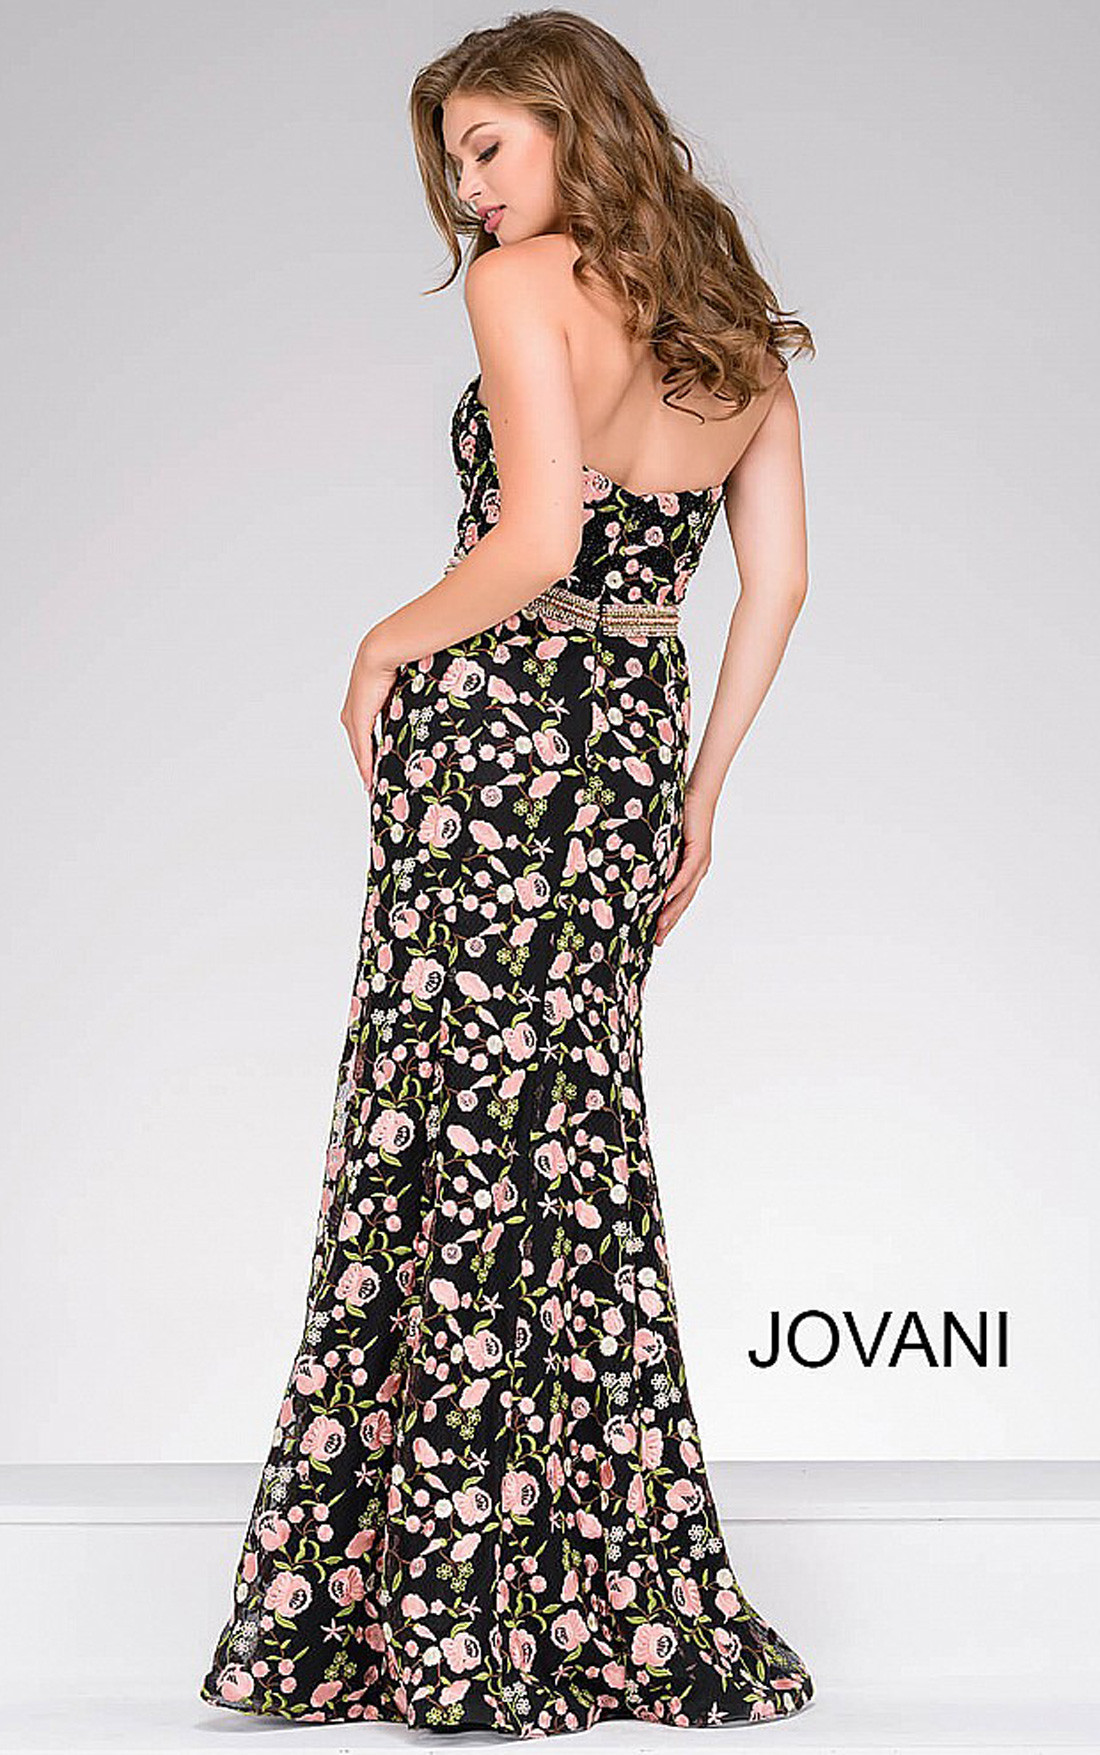 Jovani - Black Floral Embroidery Strapless Dress (47739)